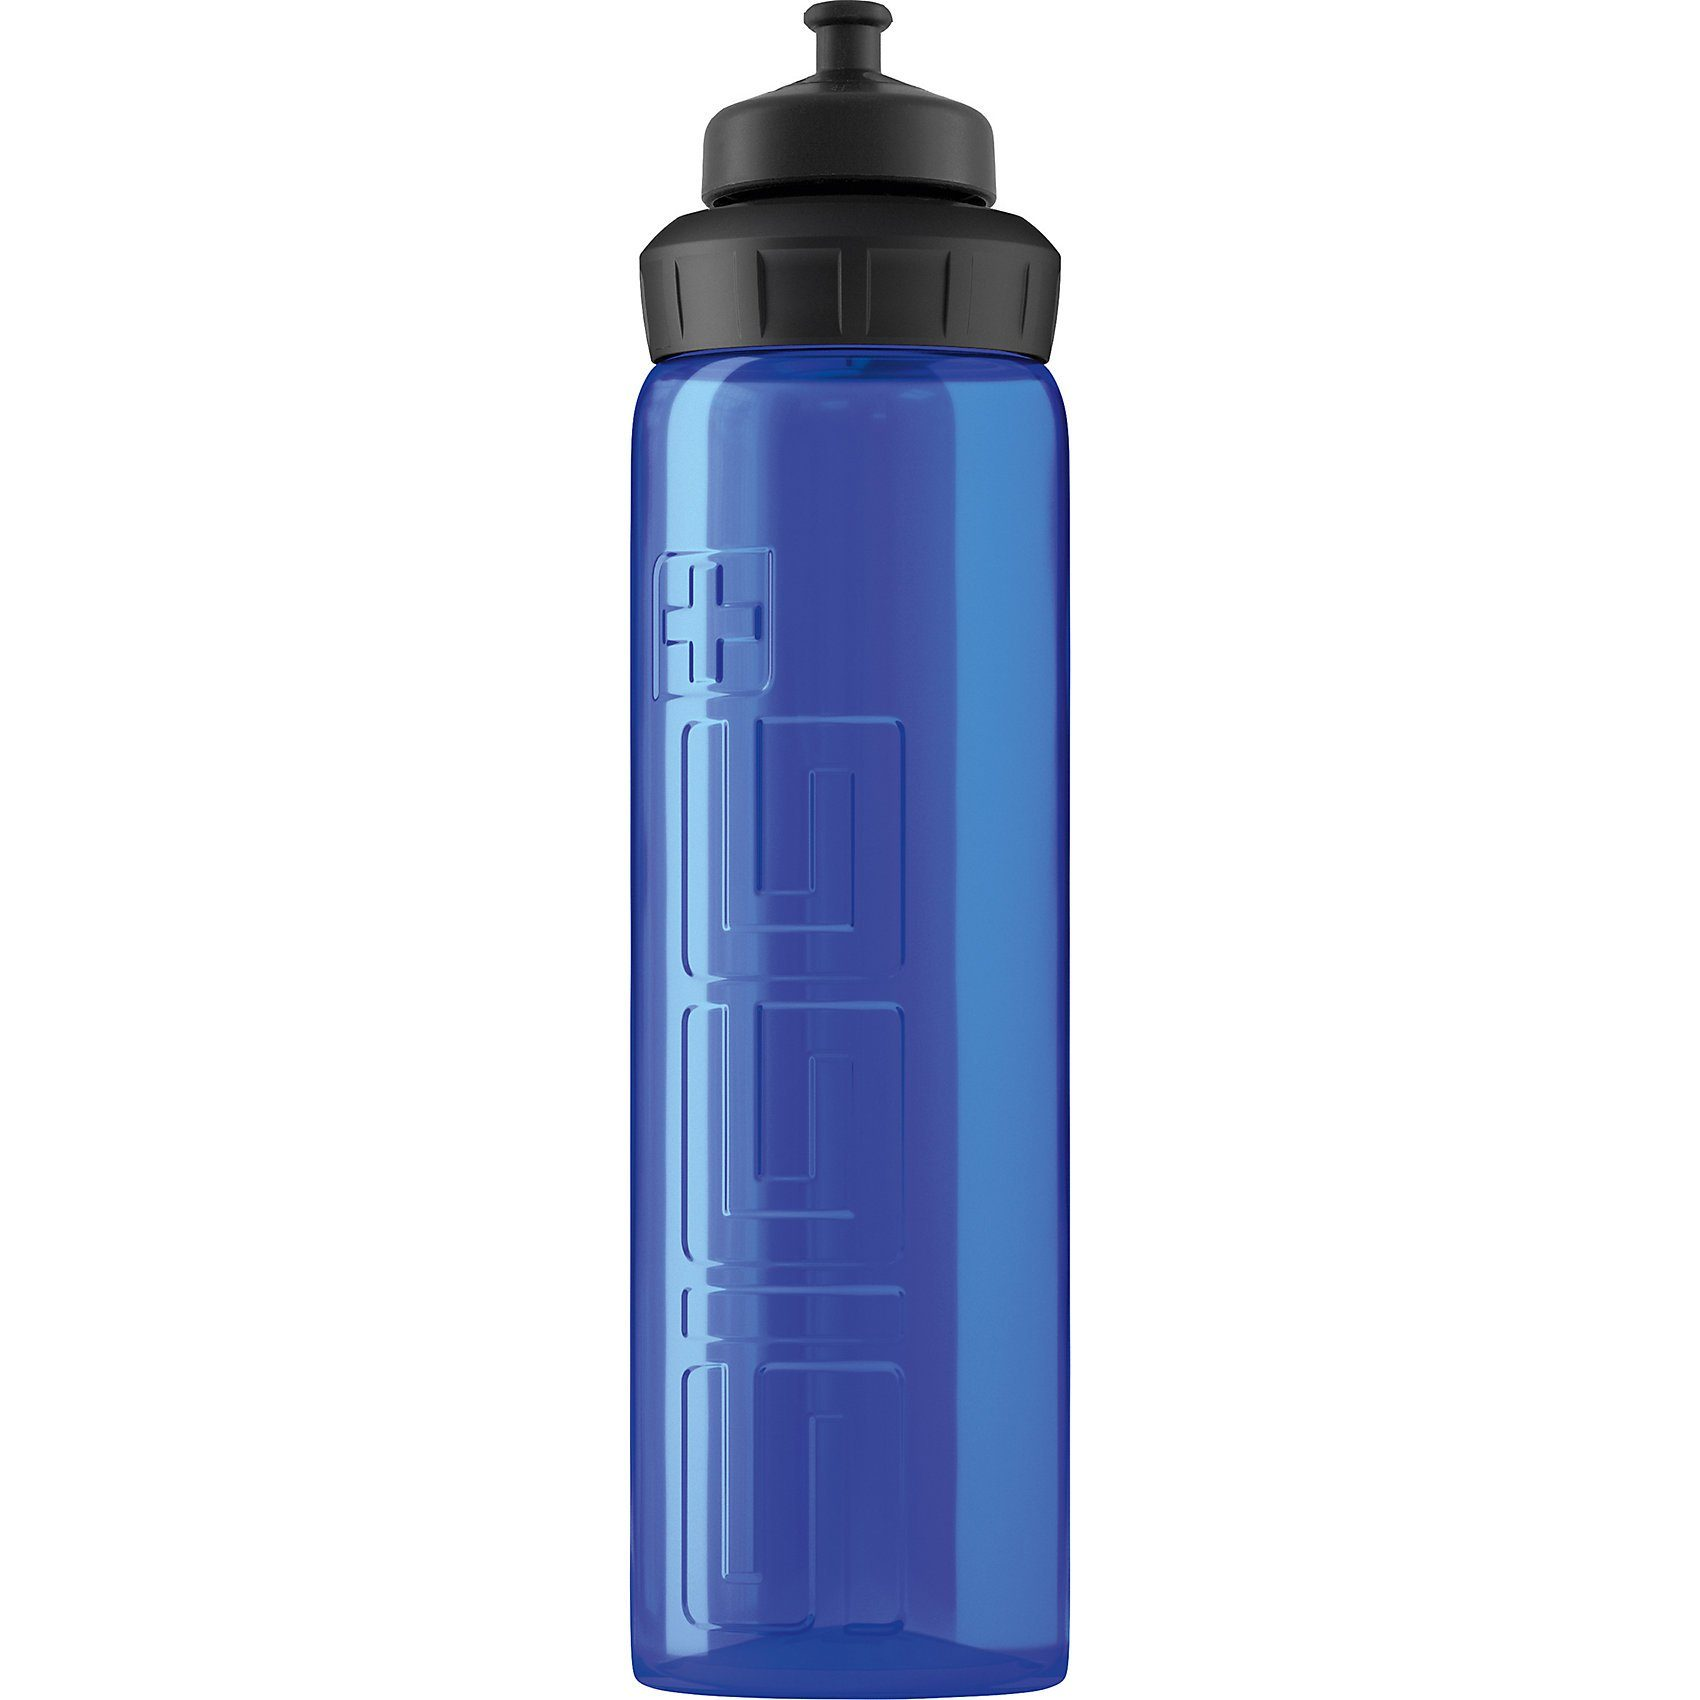 SIGG Trinkflasche VIVA 3-Stage Blue transparent, 750 ml